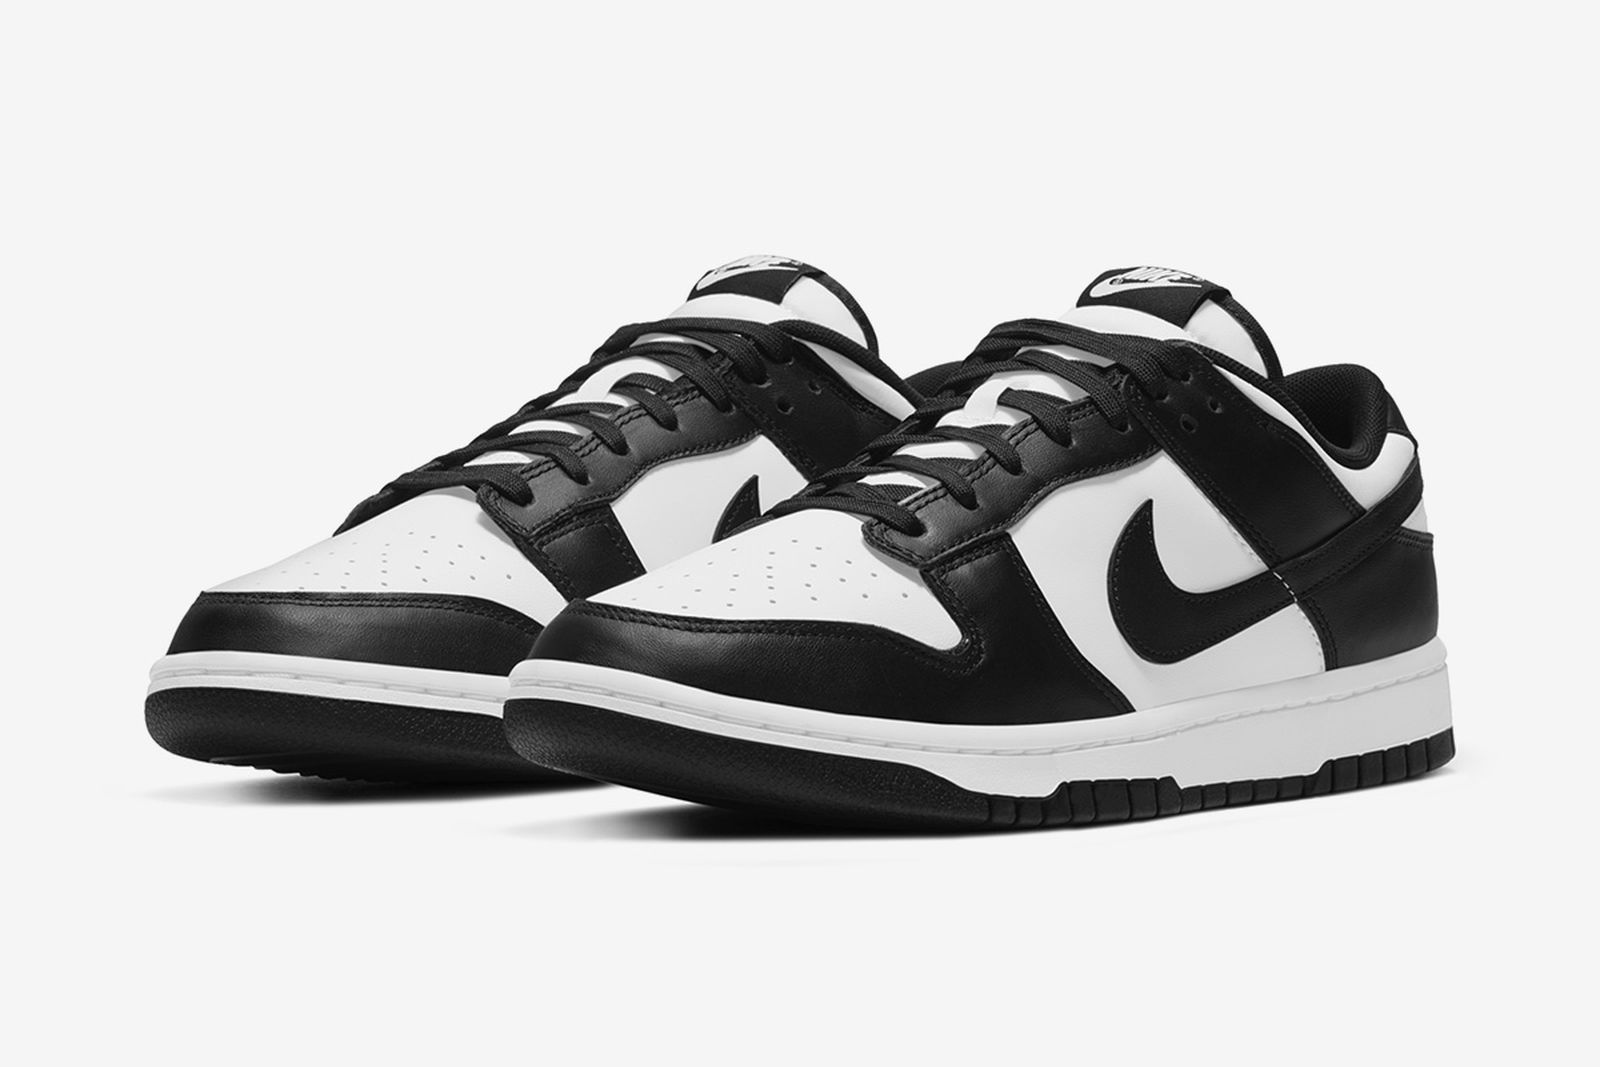 nike-dunk-spring-2021-release-date-price-1-08